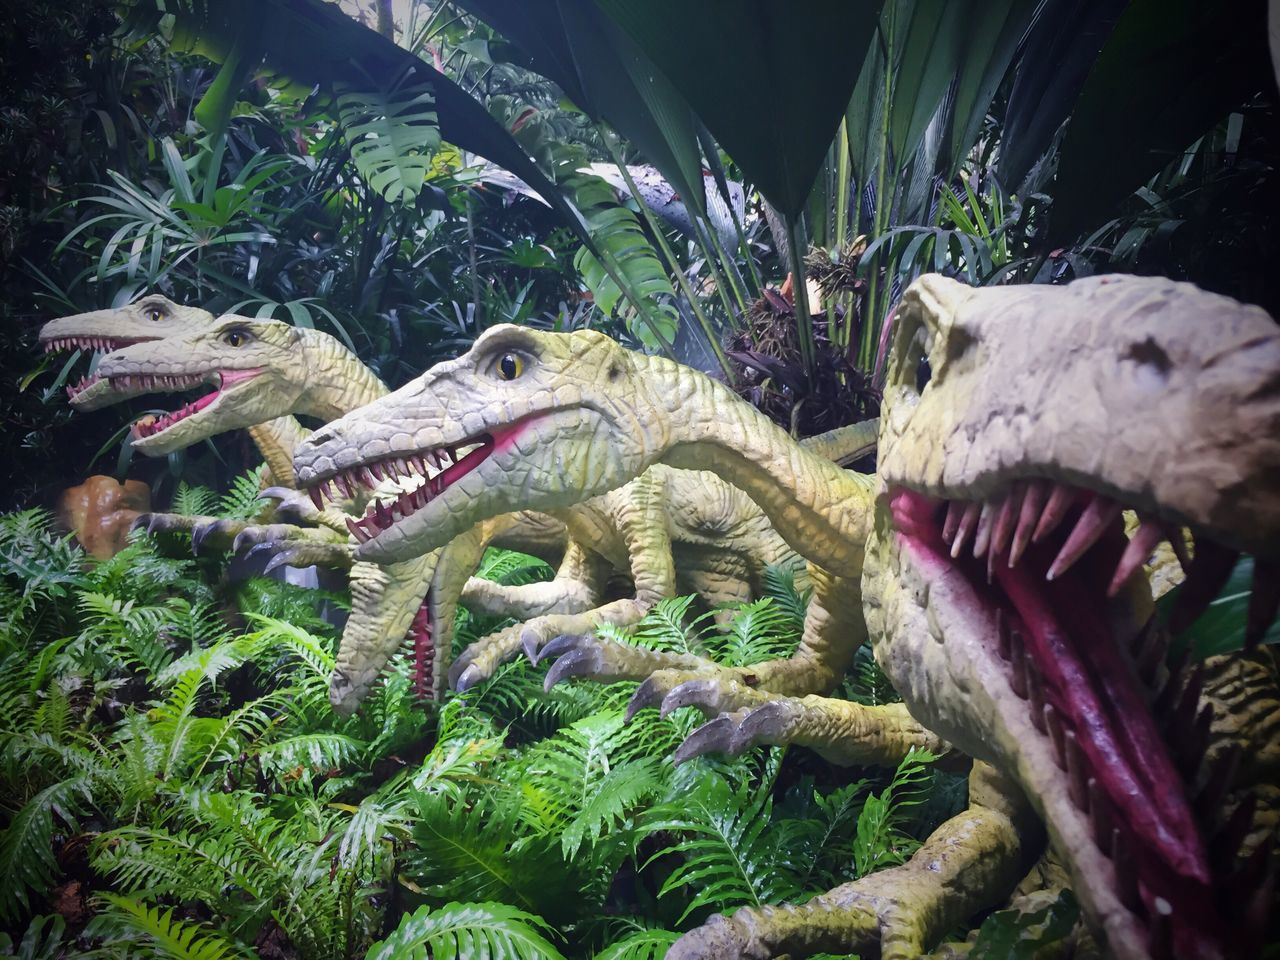 Animal Themes Dinosaur Mouth Open Extinct No People Outdoors Animals In The Wild Dinosaurs Singapore Zoo Singapore Zoological Garden Singapore Zoo. Iphone 6 IPhone Photography Dinosaur Iphonephotography